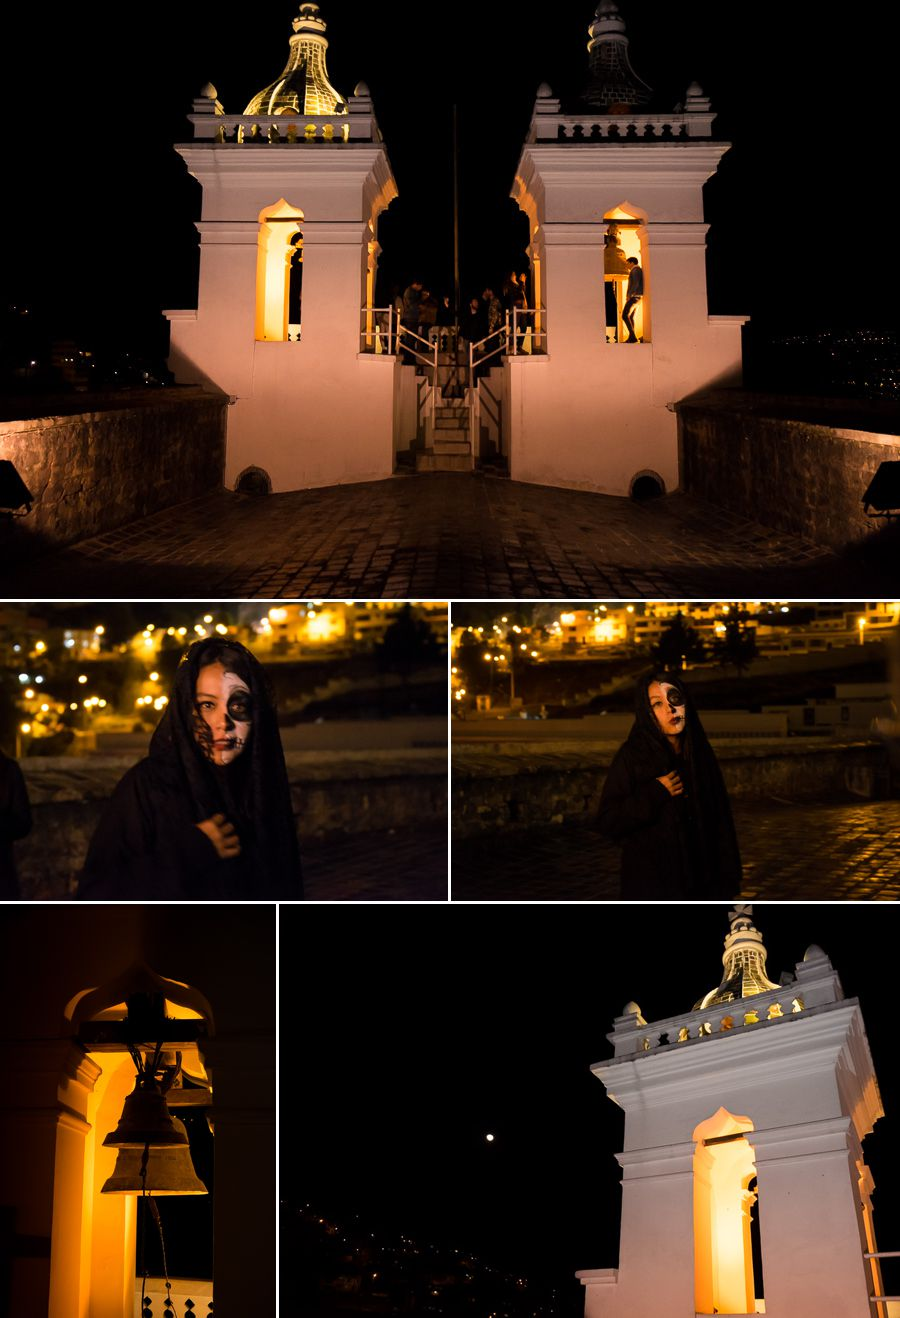 Leyendas Nocturnas on the roof - El Tejar - Quito